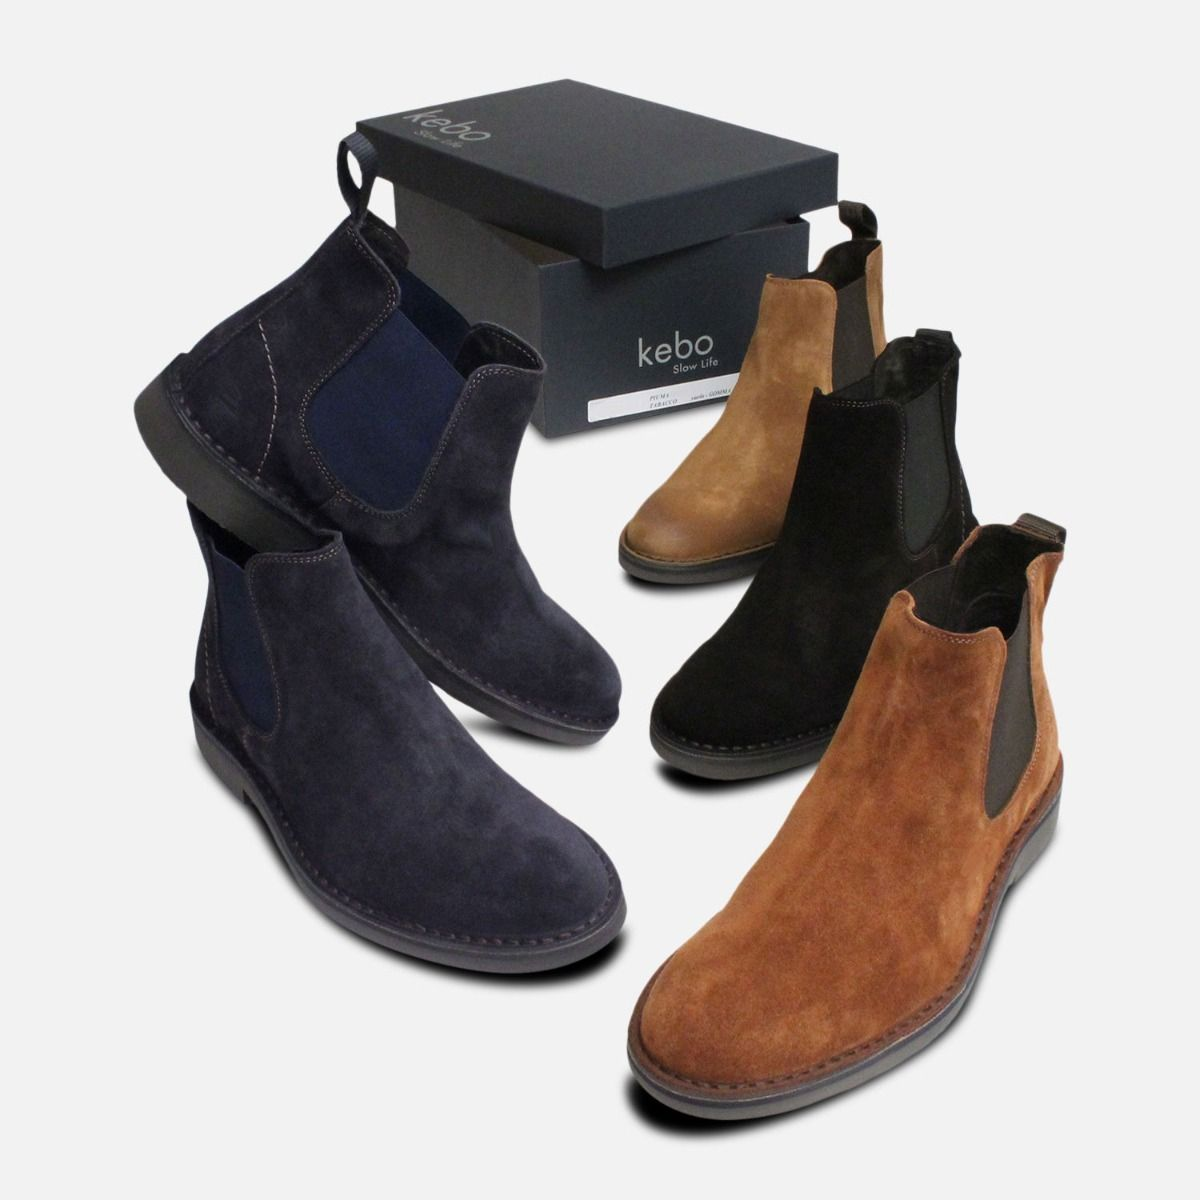 New Burnt Siena Brown Suede Chelsea Boots